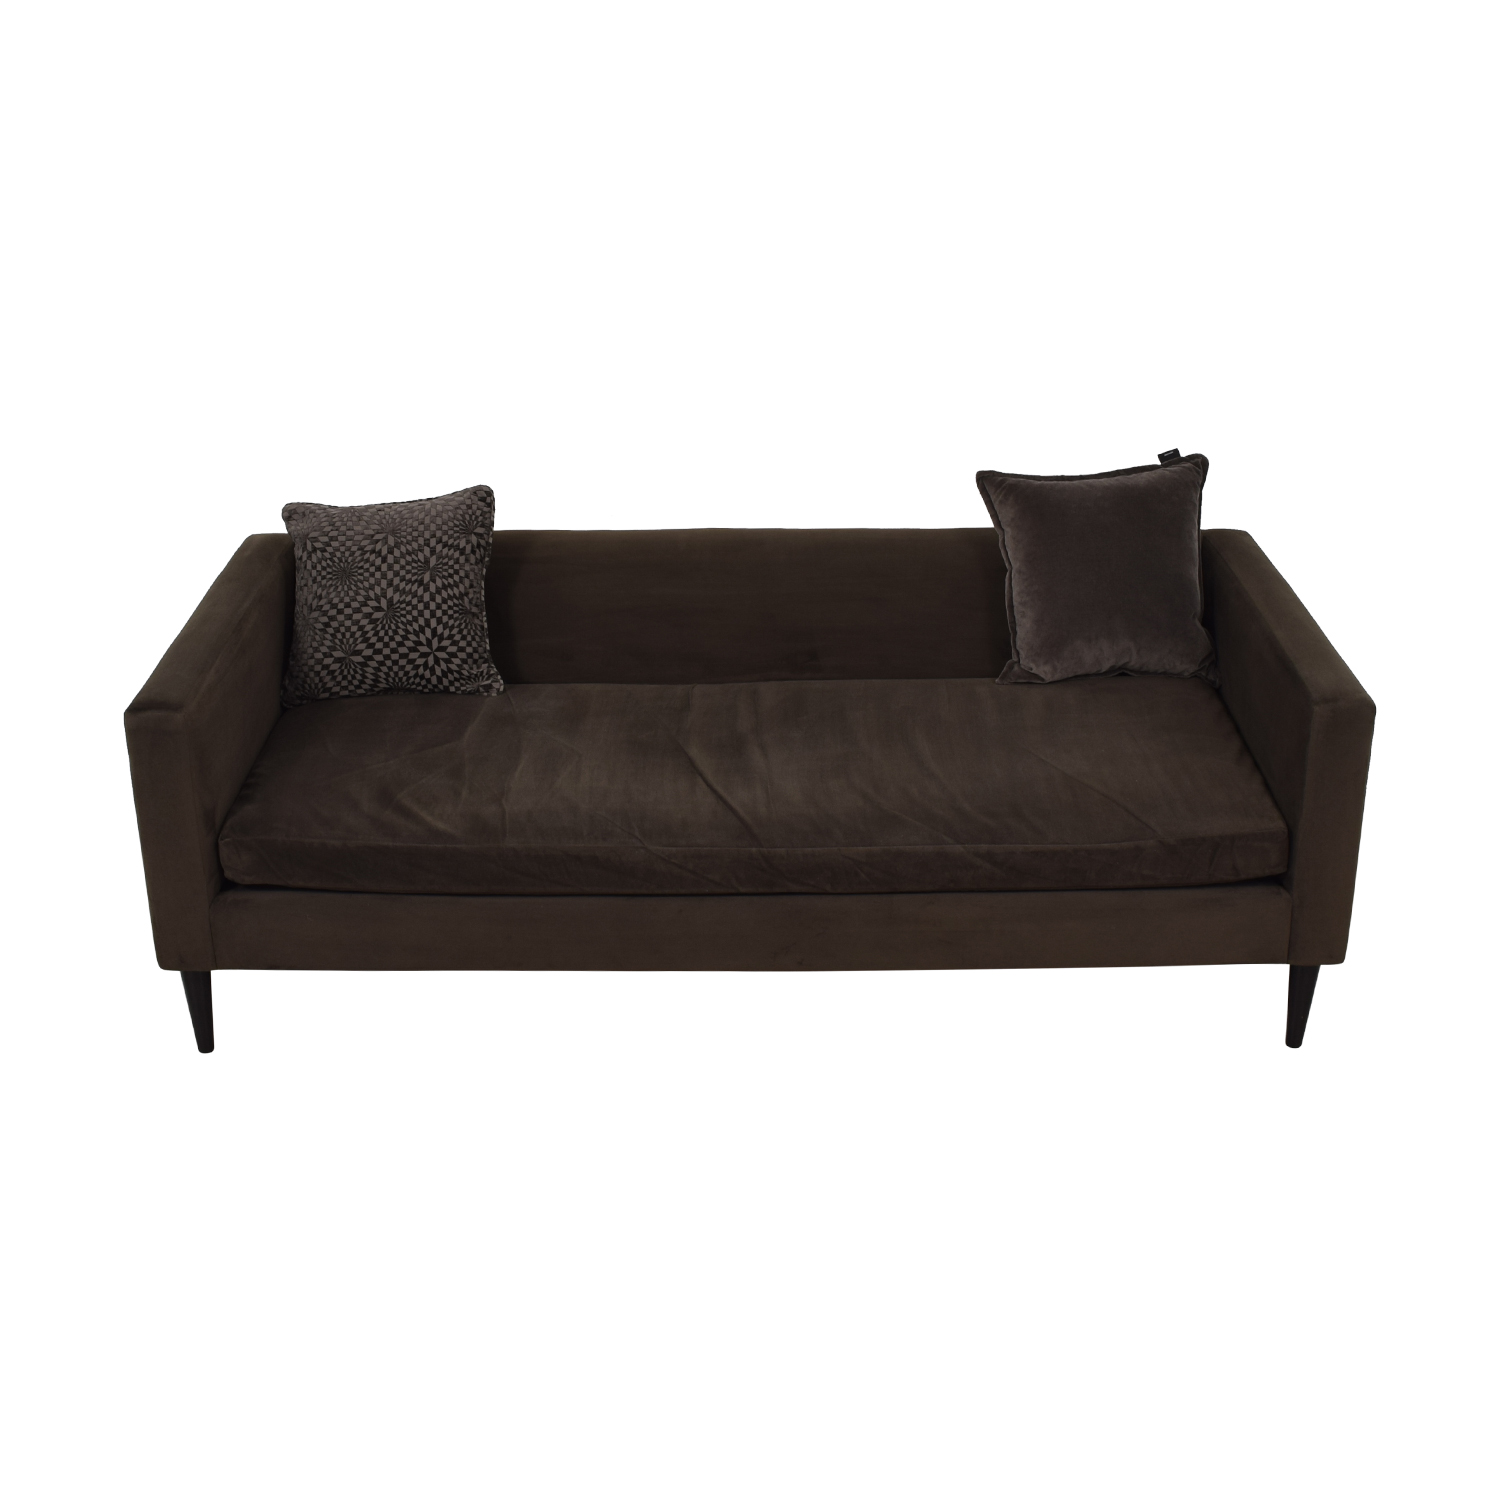 CB2 CB2 Brown Sofa with Two Throw Pillows